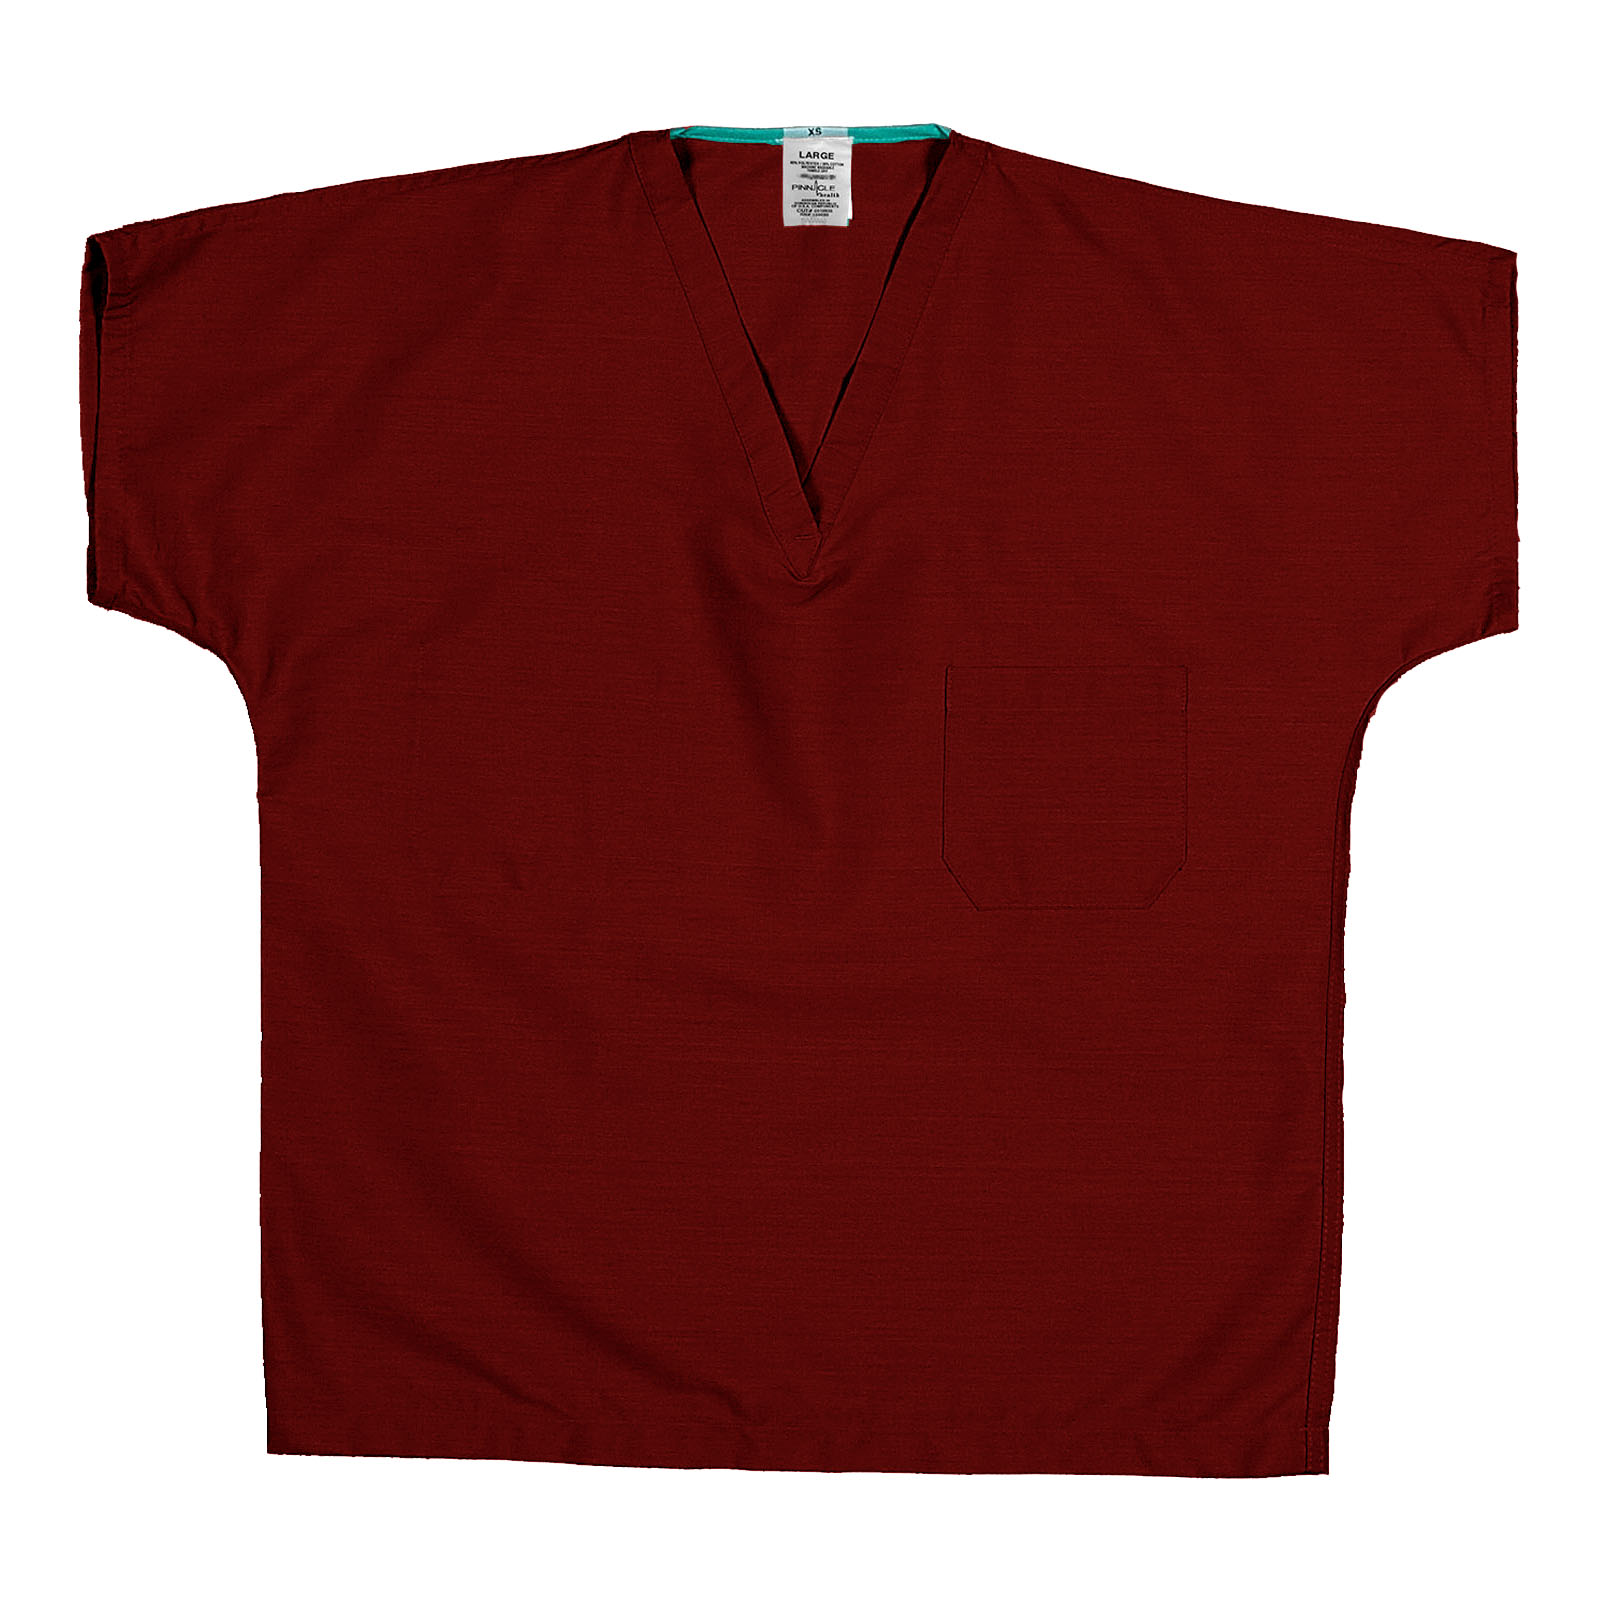 ST60U Red 65/35 Poly/Cotton Poplin V-Neck Scrub Top